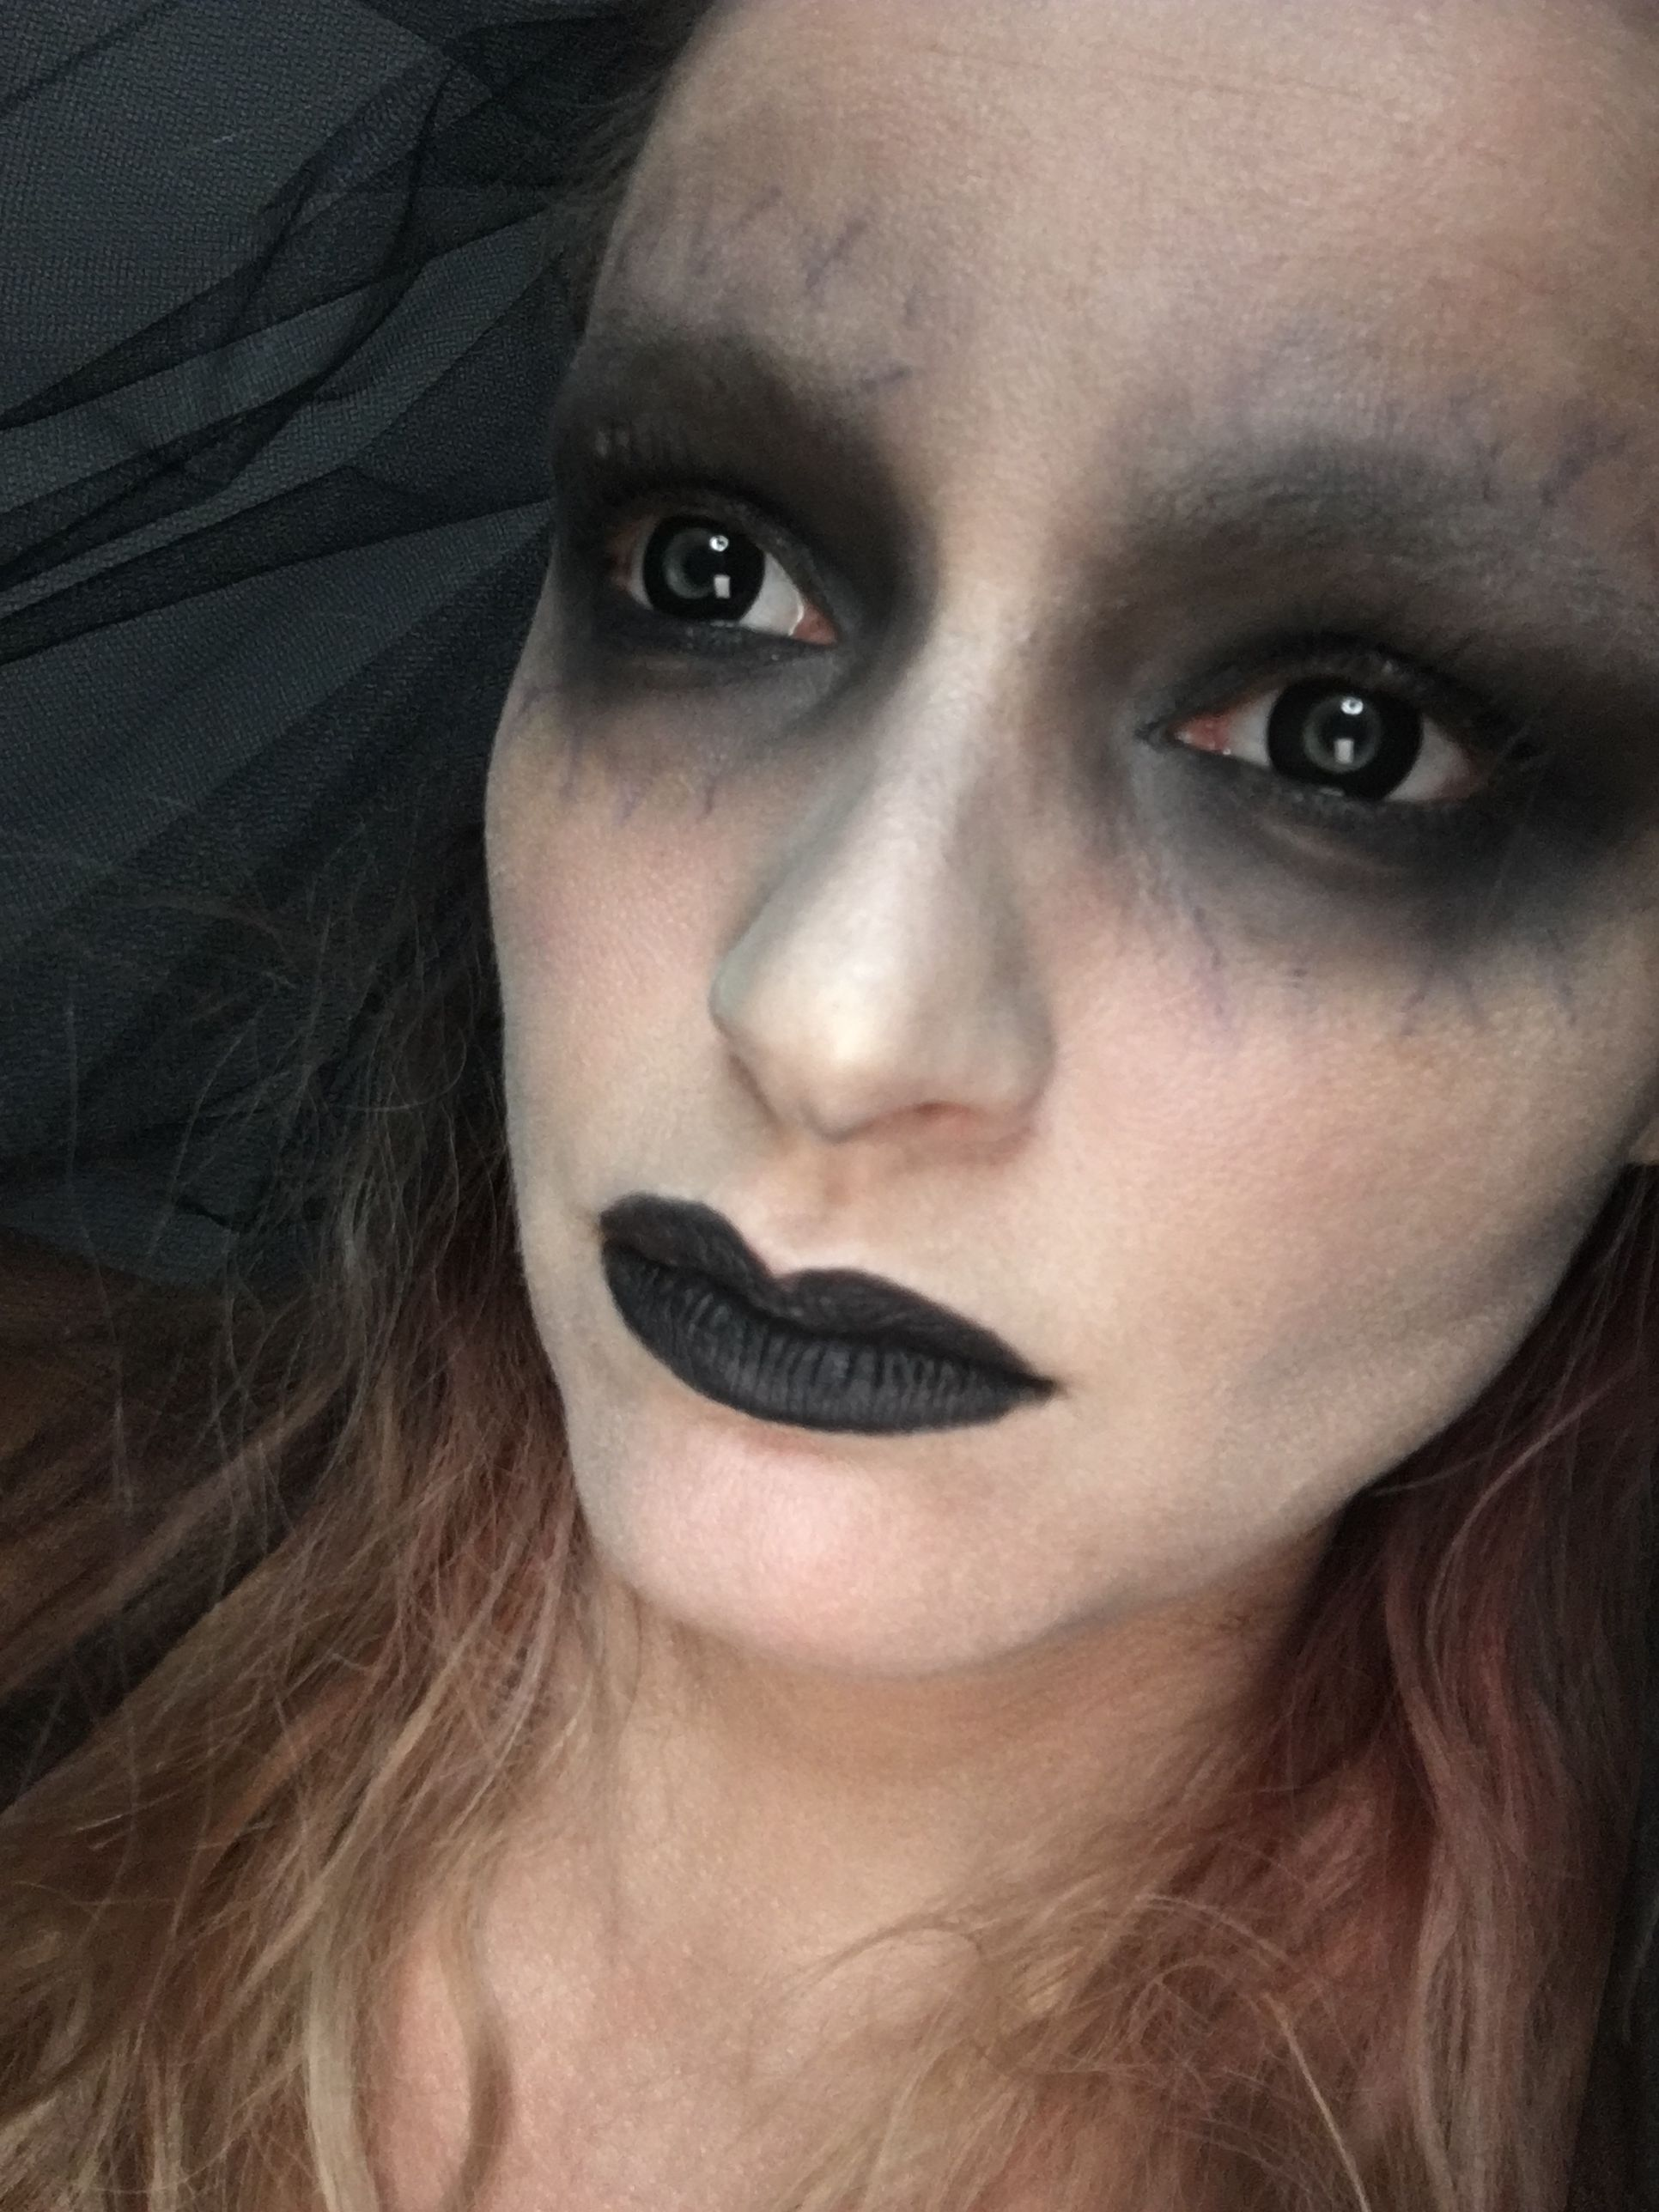 younique halloween makeup dead bride www.thebeautyinfusion